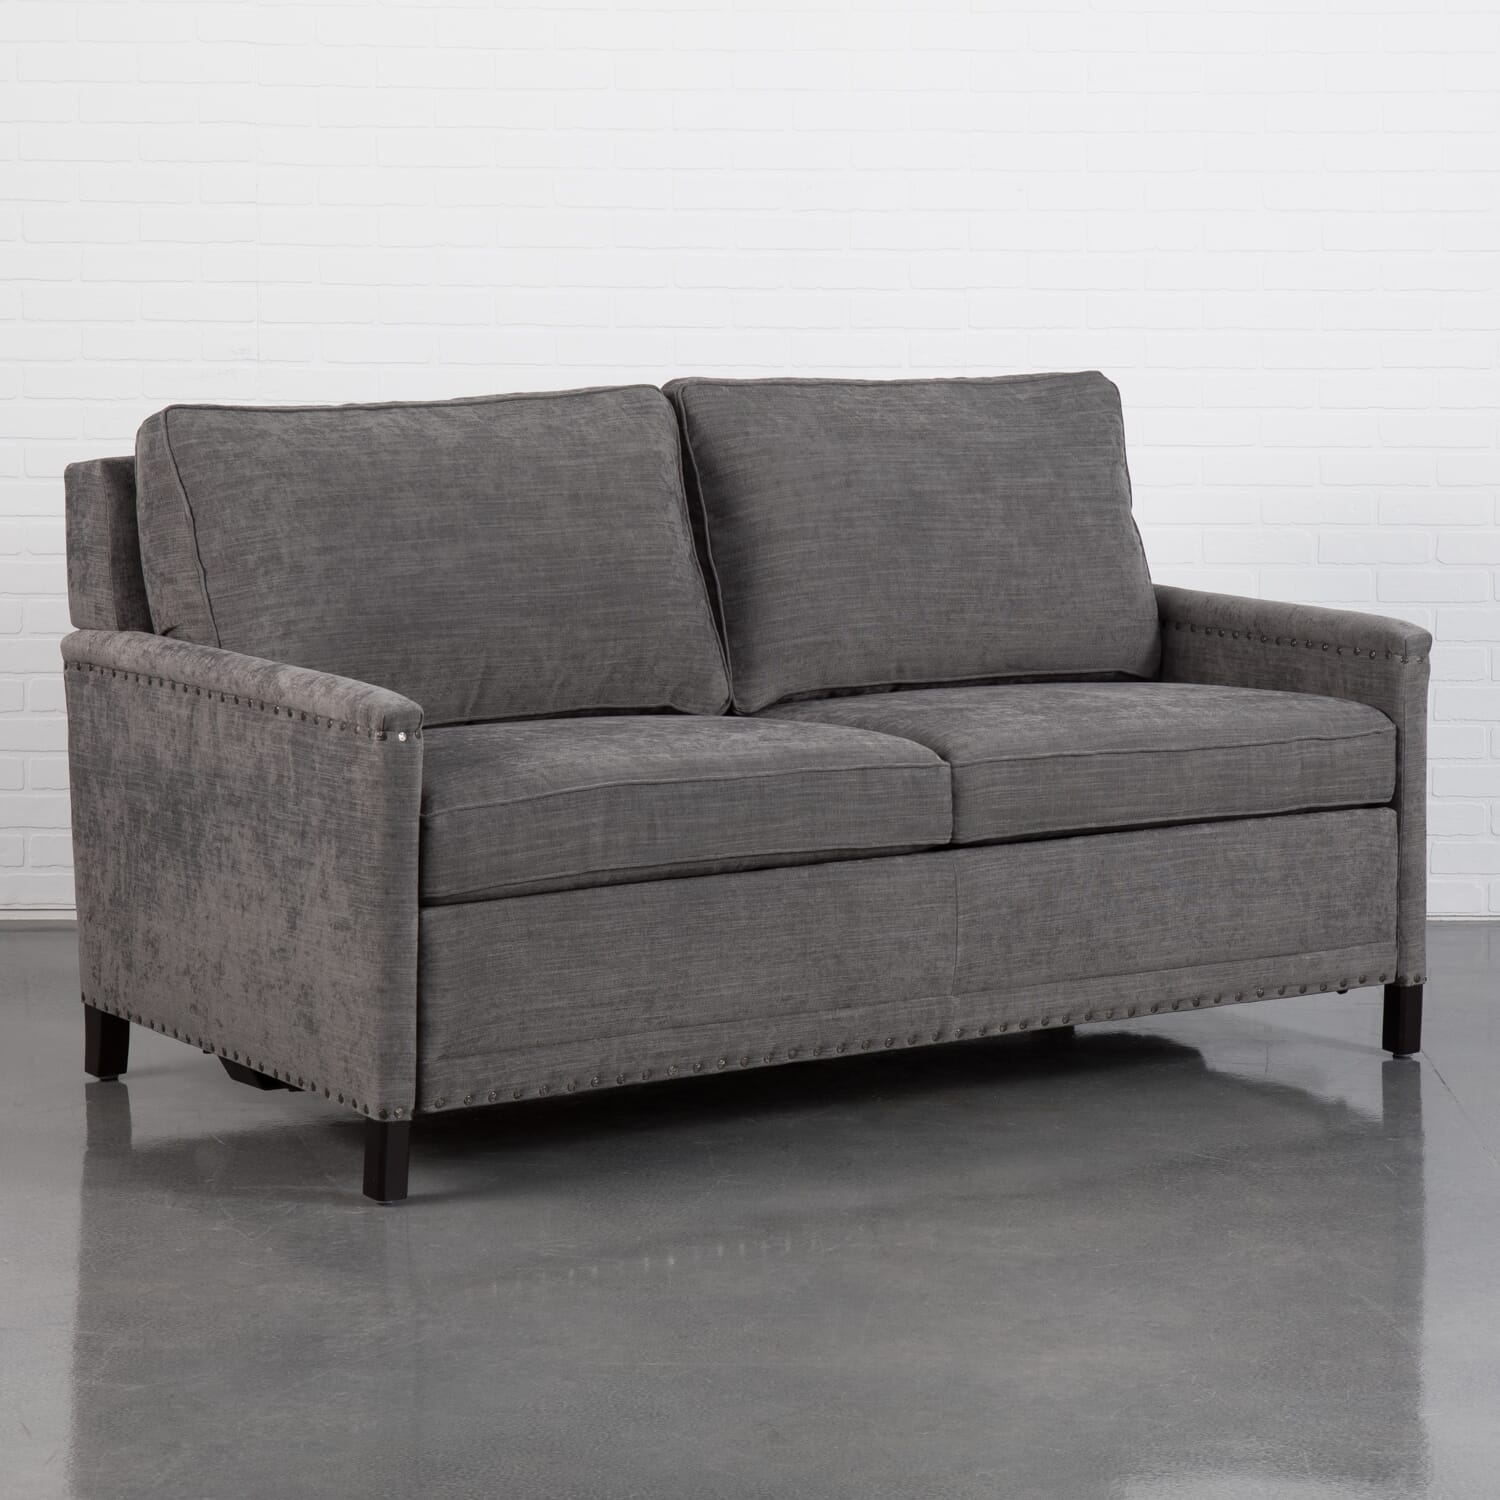 Knox Queen Sleeper Sofa Closeout Furniture Furniture Living Room Sofas August Haven